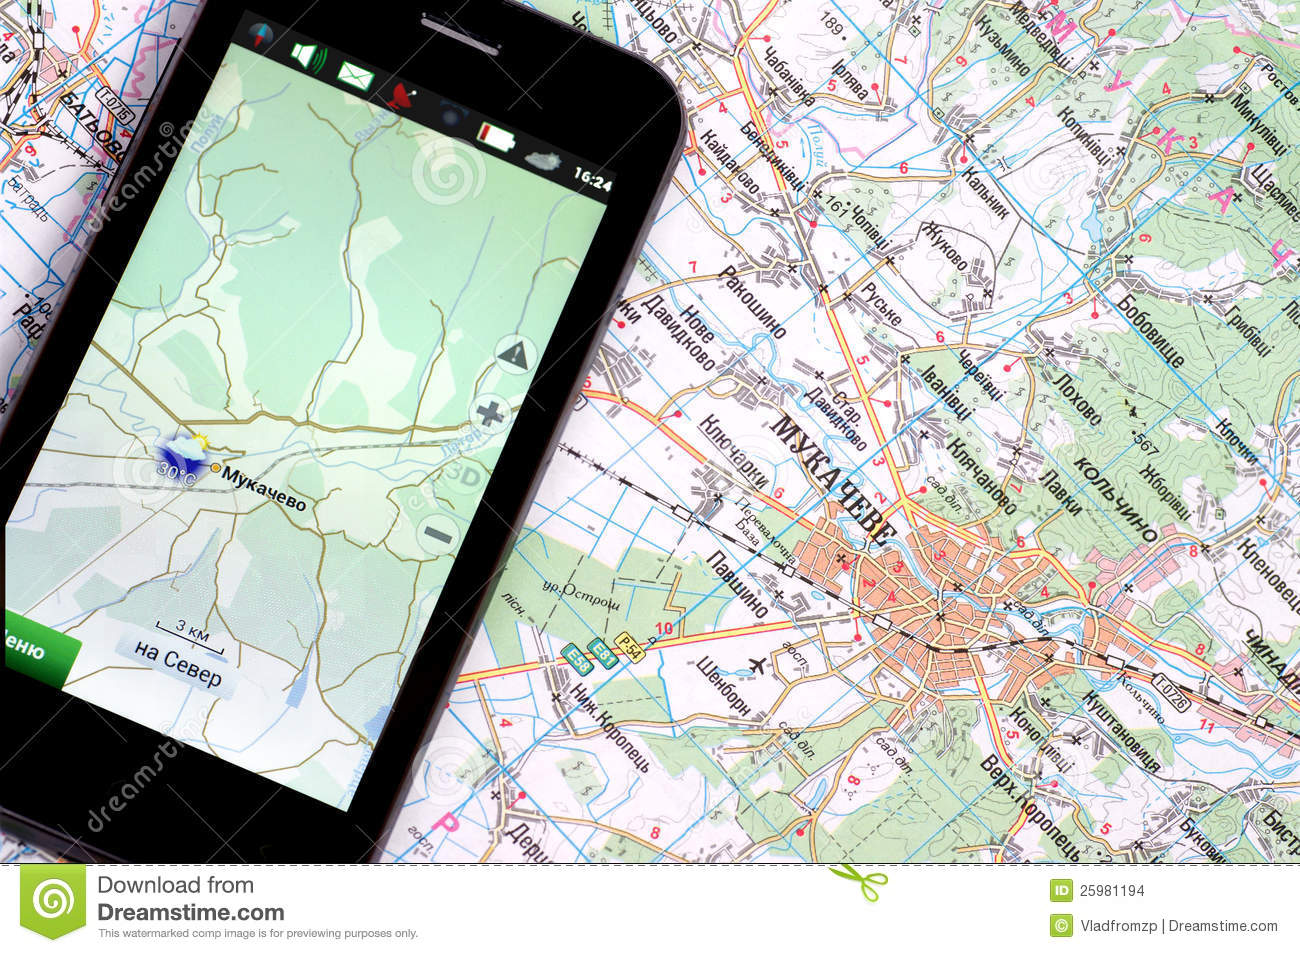 Smartphone With GPS And A Map Stock Photo - Image of call, electronics: 25981194